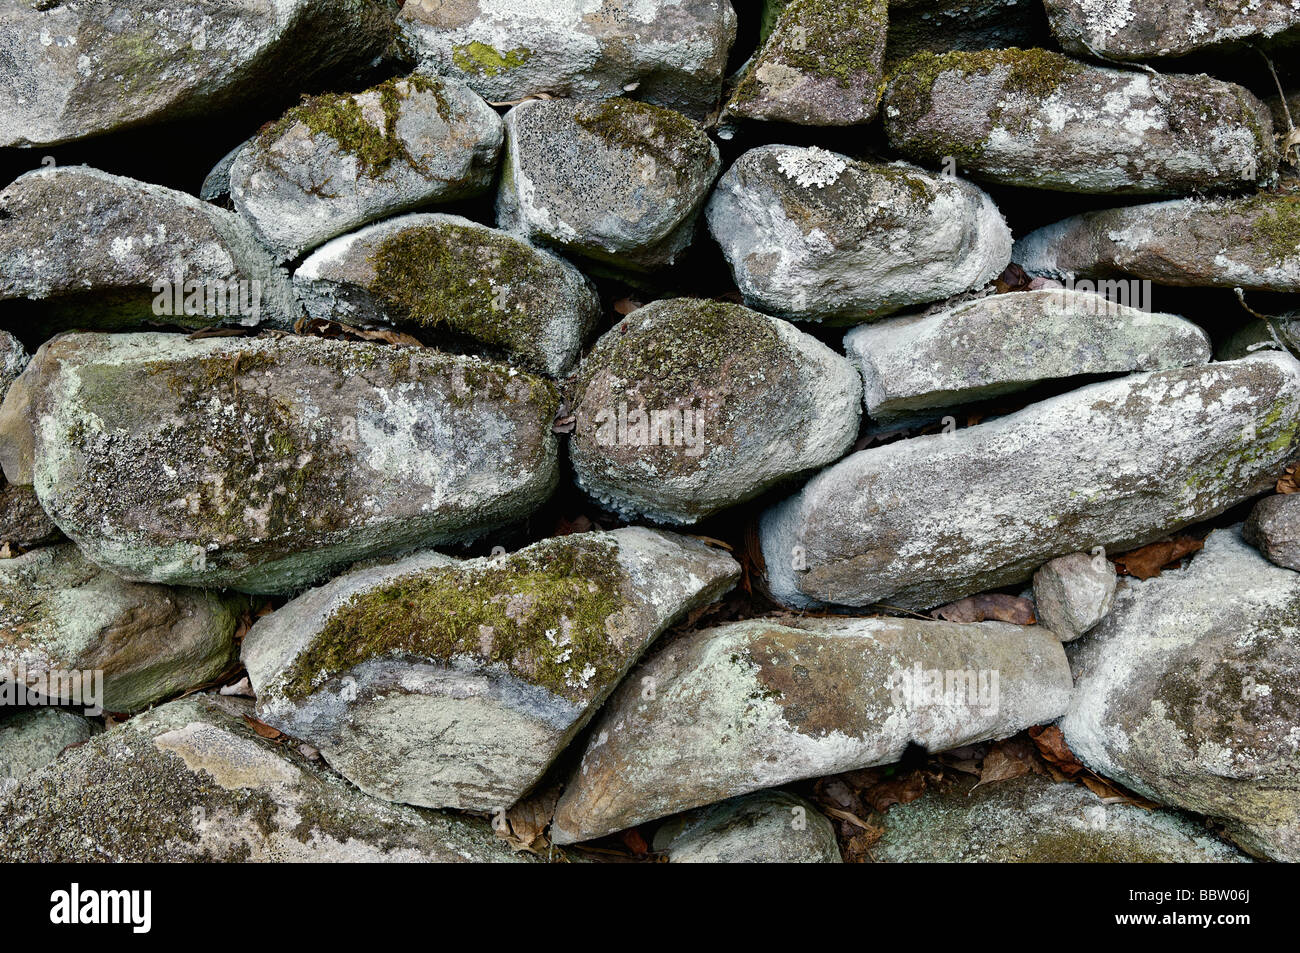 Detail of Moss and Lichen Covered Stone Wall in Great Smoky Mountains National Park Tennessee - Stock Image